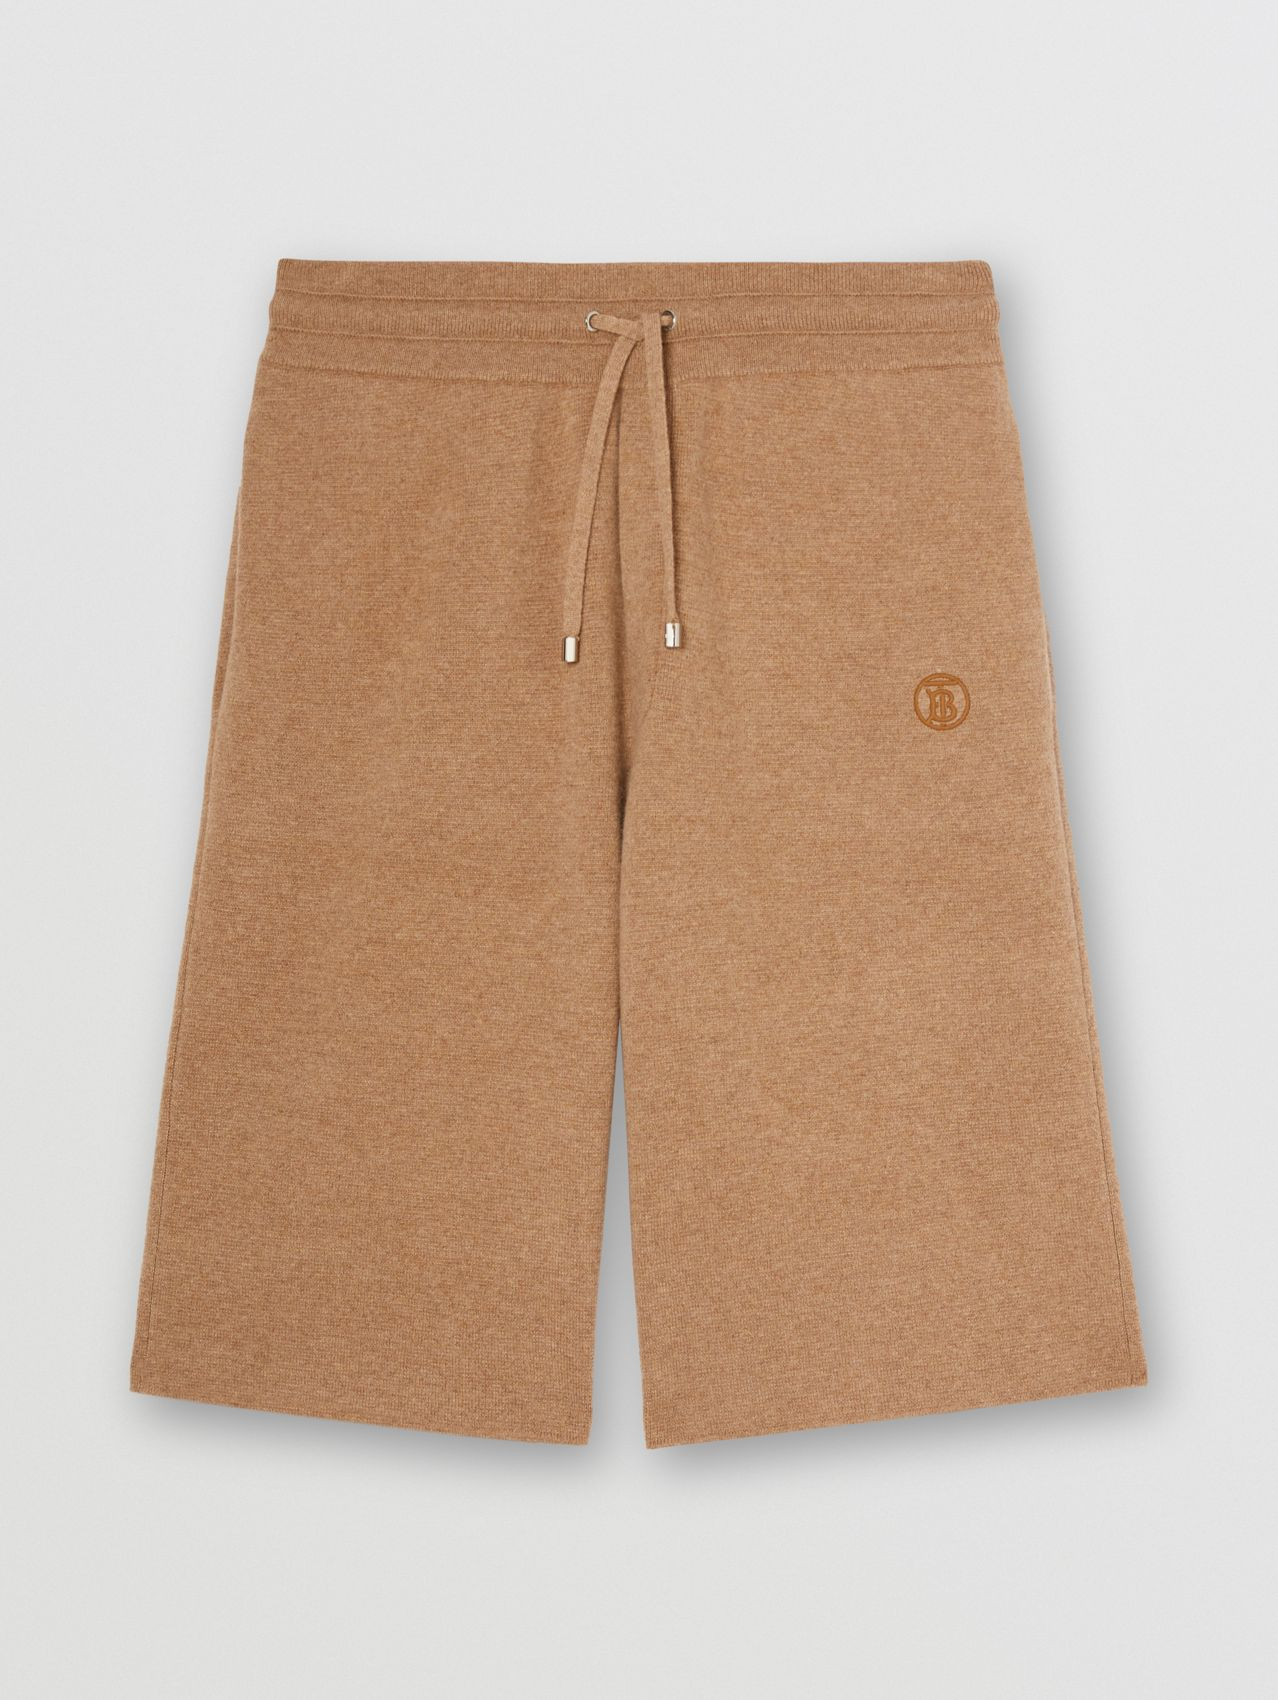 Monogram Motif Cashmere Drawcord Shorts in Pale Coffee